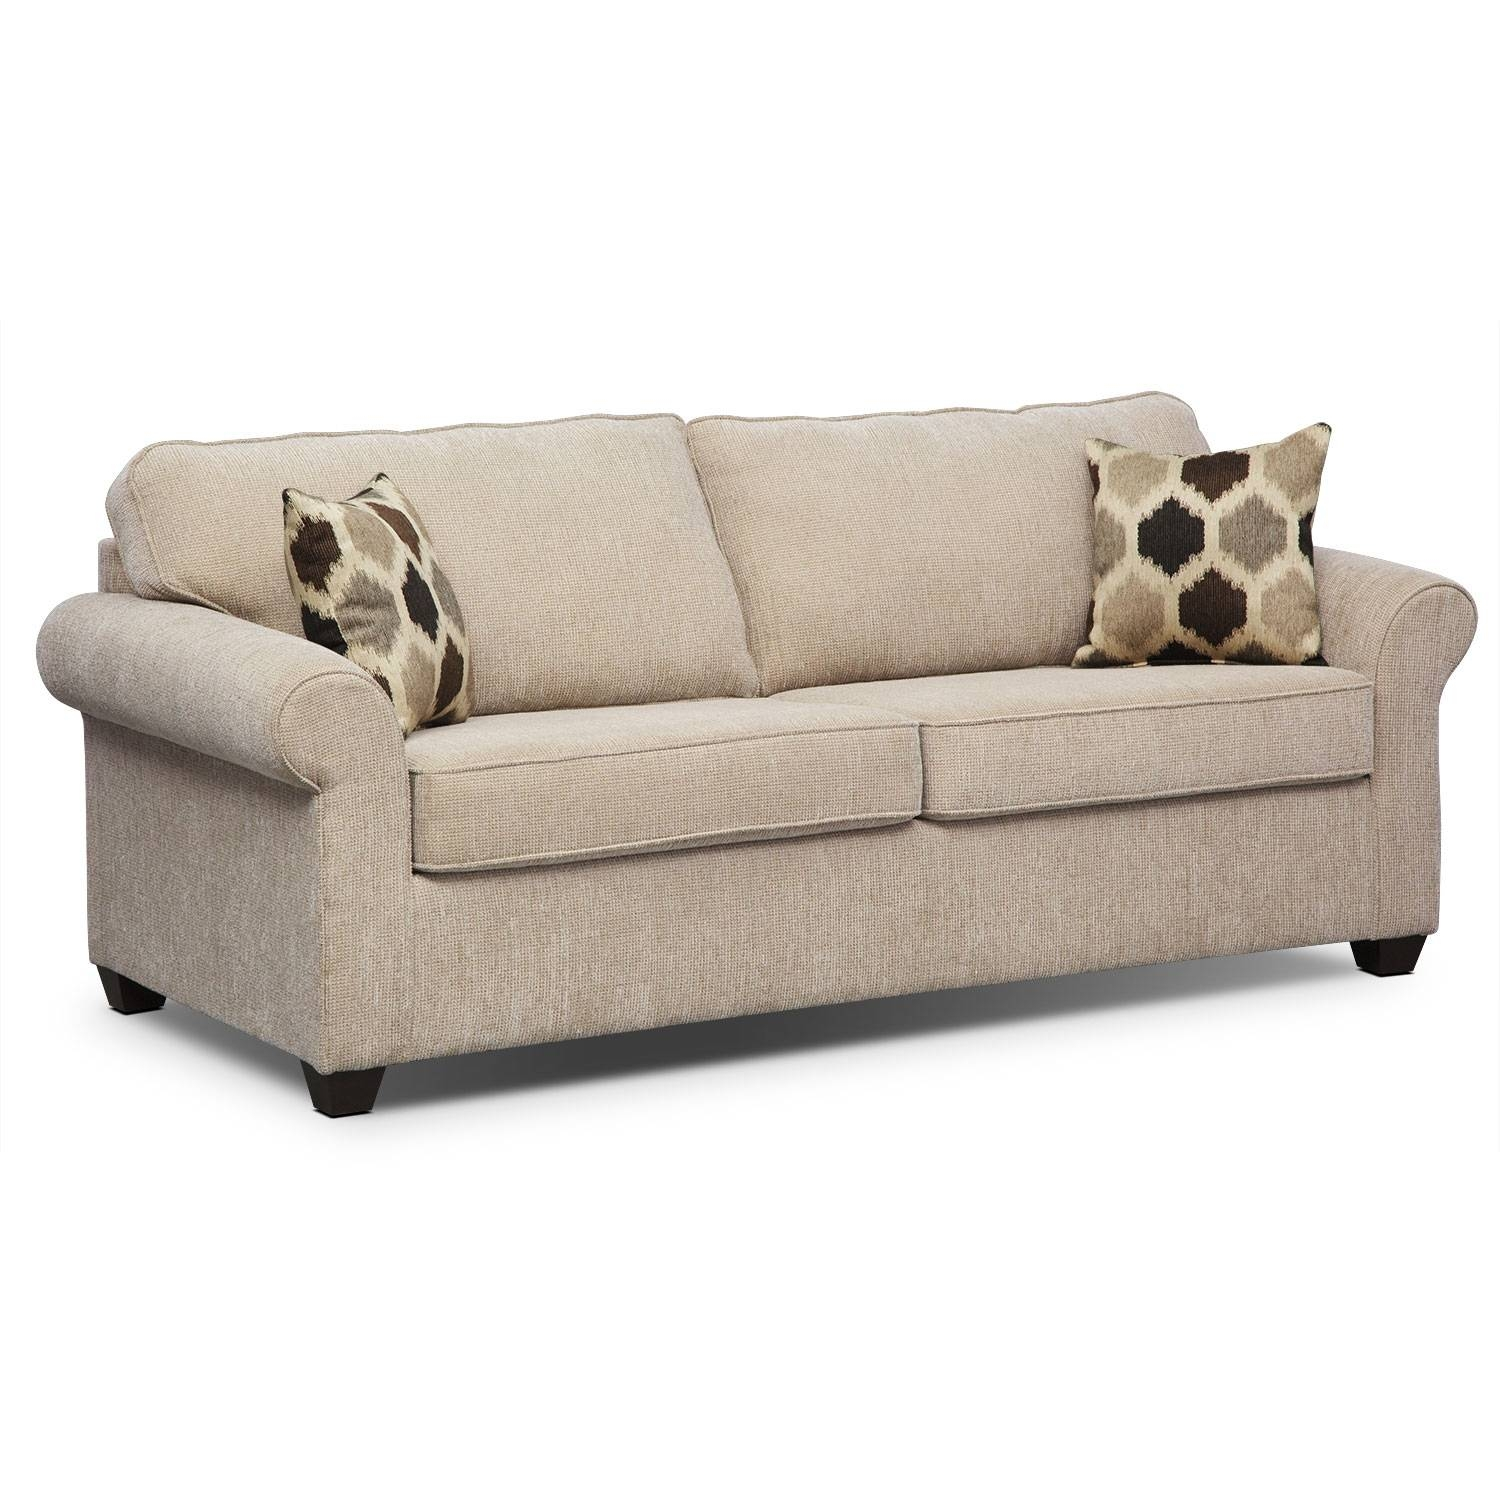 simmons manhattan sleeper sofa cost of reupholstering foter thesofa